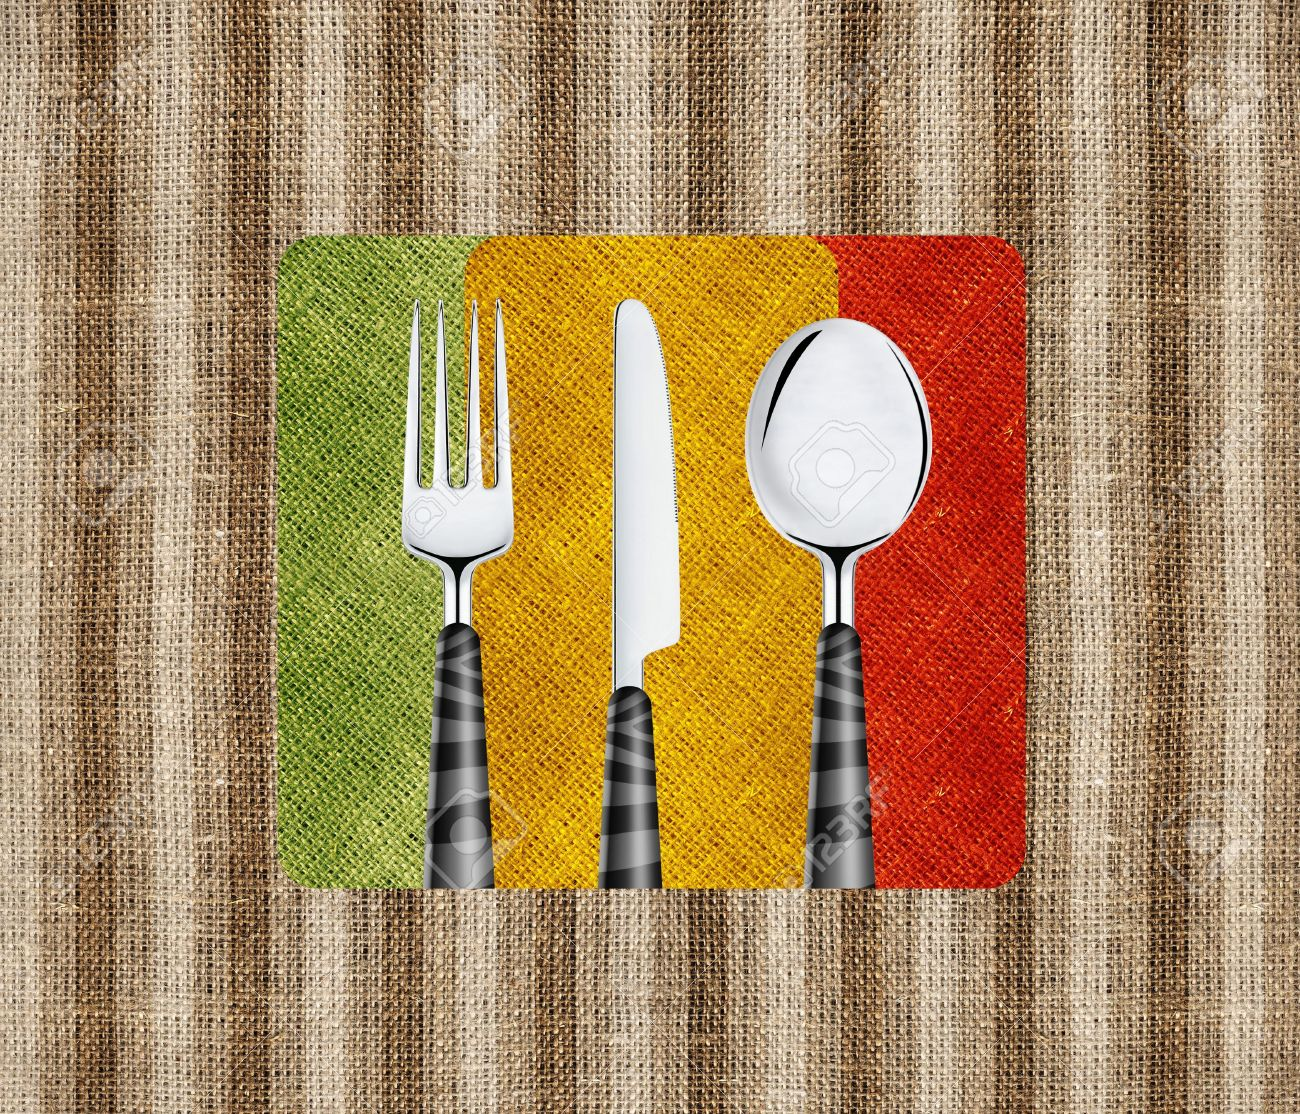 Restaurant menu cover design with knife, spoon and fork. Stock Photo - 13605330